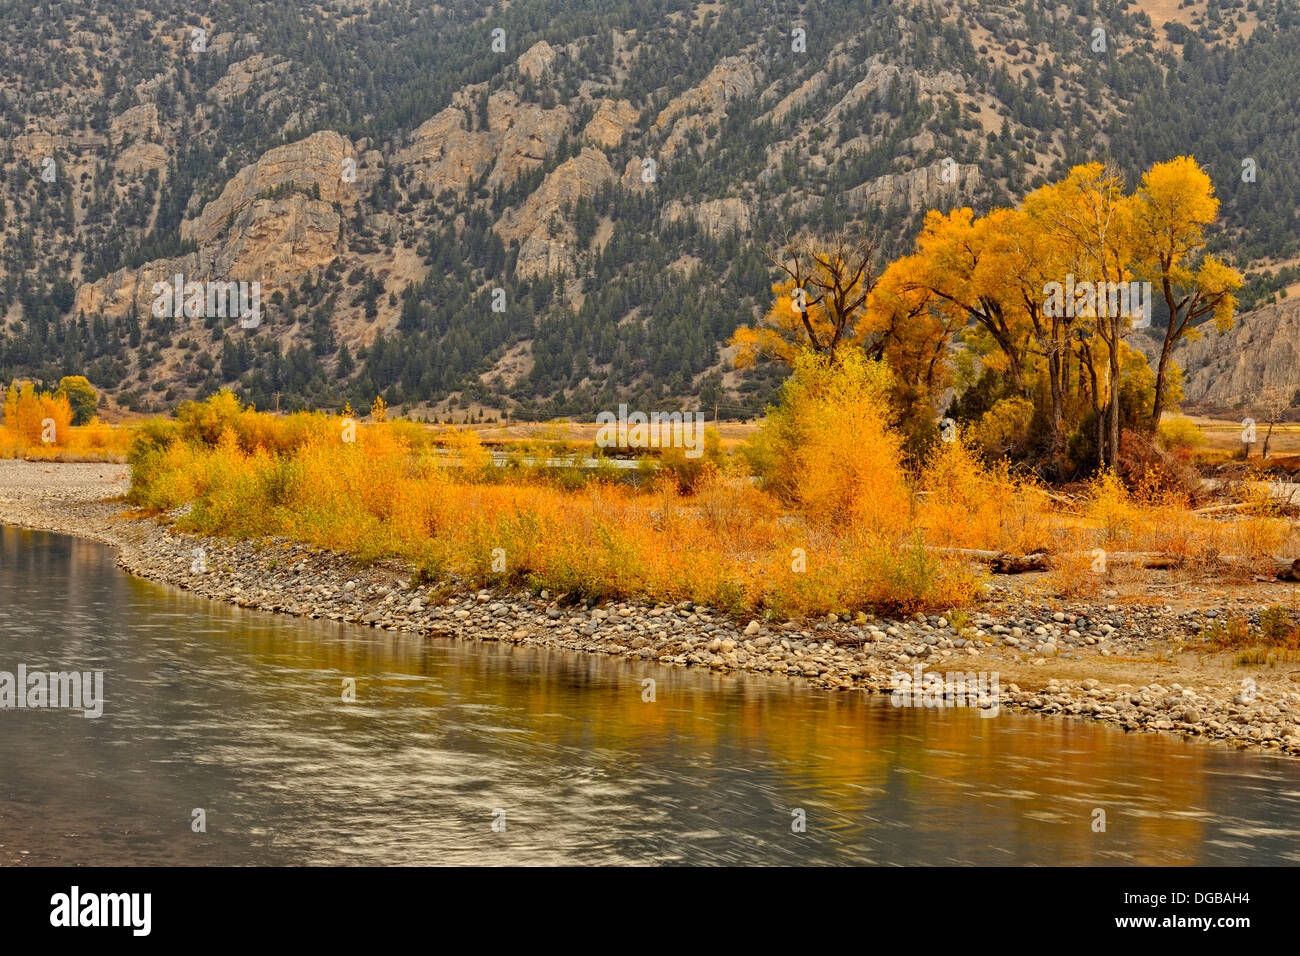 Autumn foliage on cottonwoods along the Yellowstone River near de Puy Spring Creek Livingston Montana USA - Stock Image